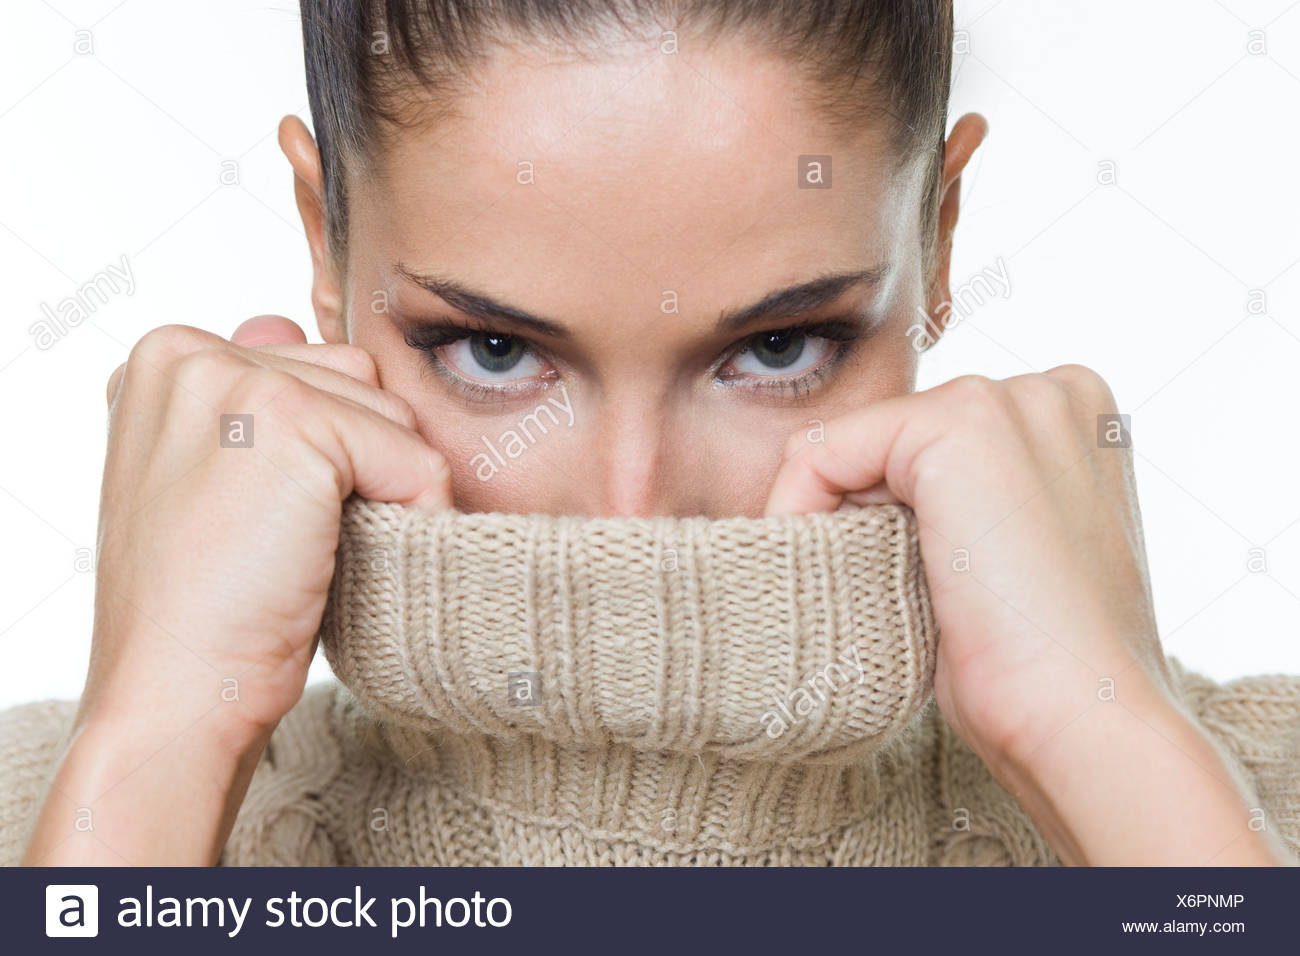 Young woman covering her face with sweater Photo Stock